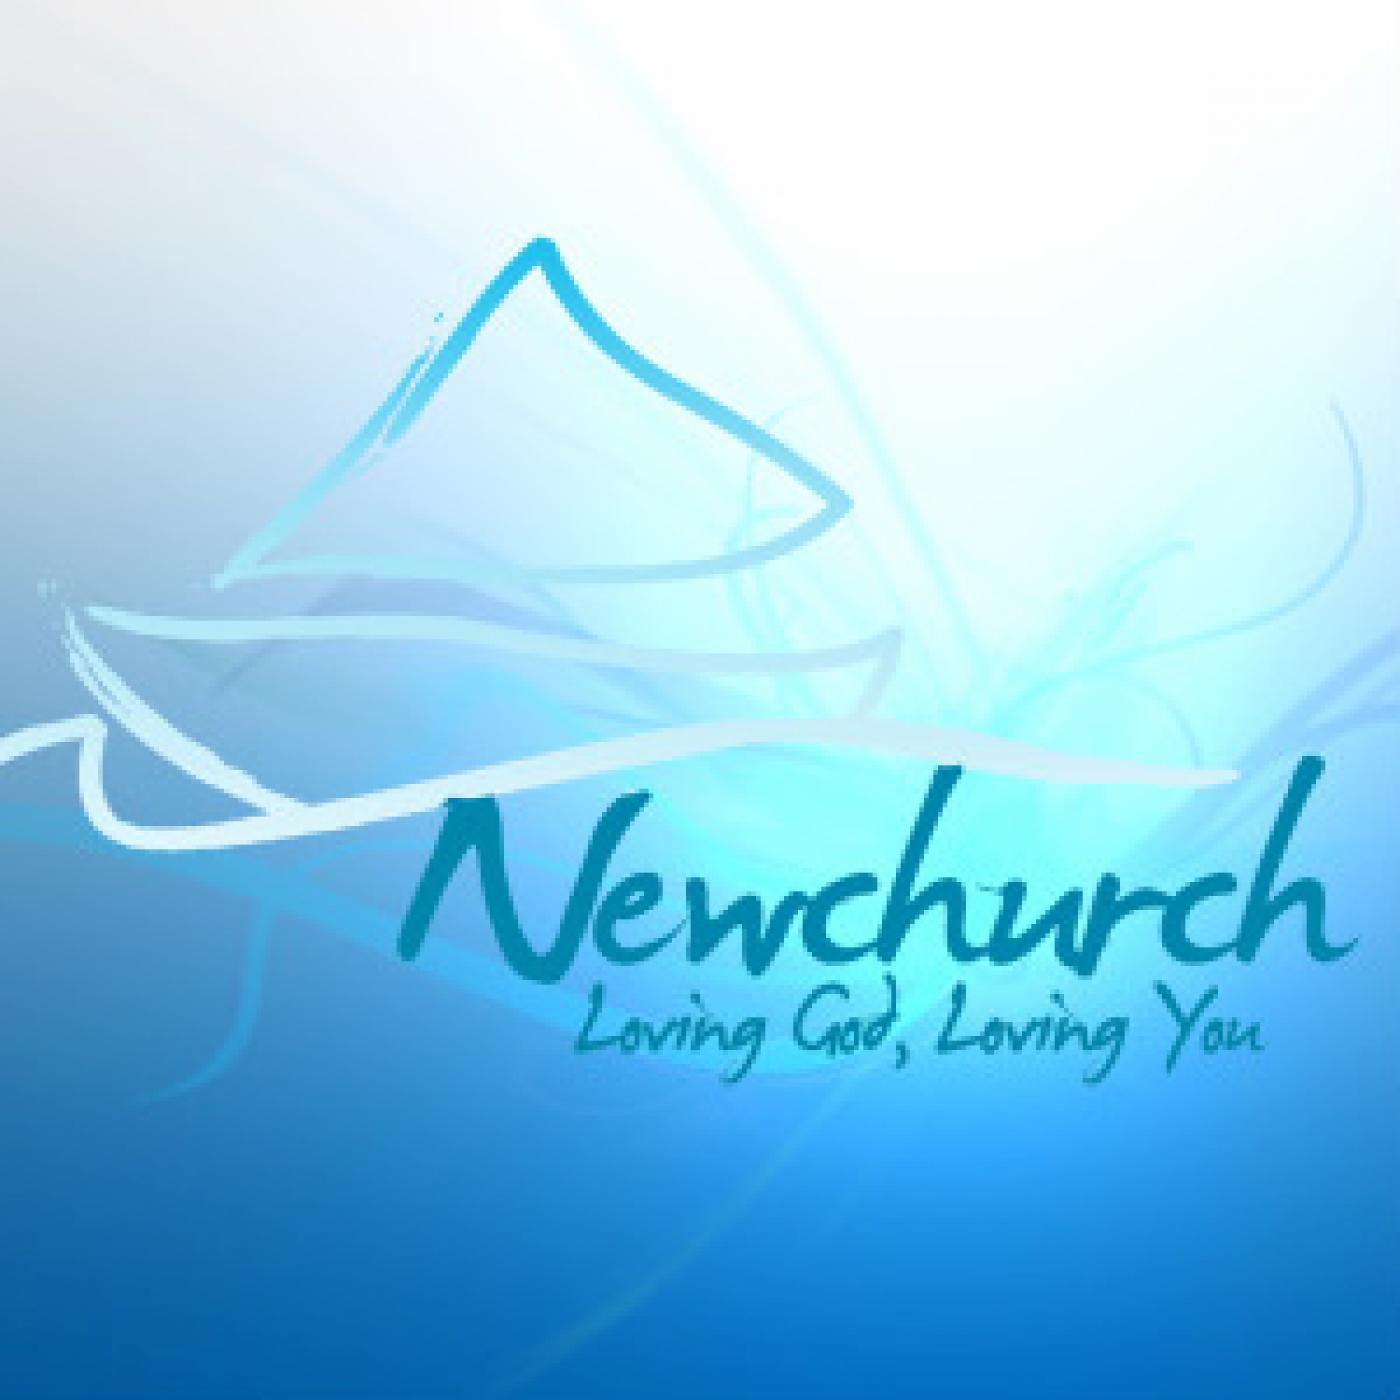 Newchurch Sermons Podcast